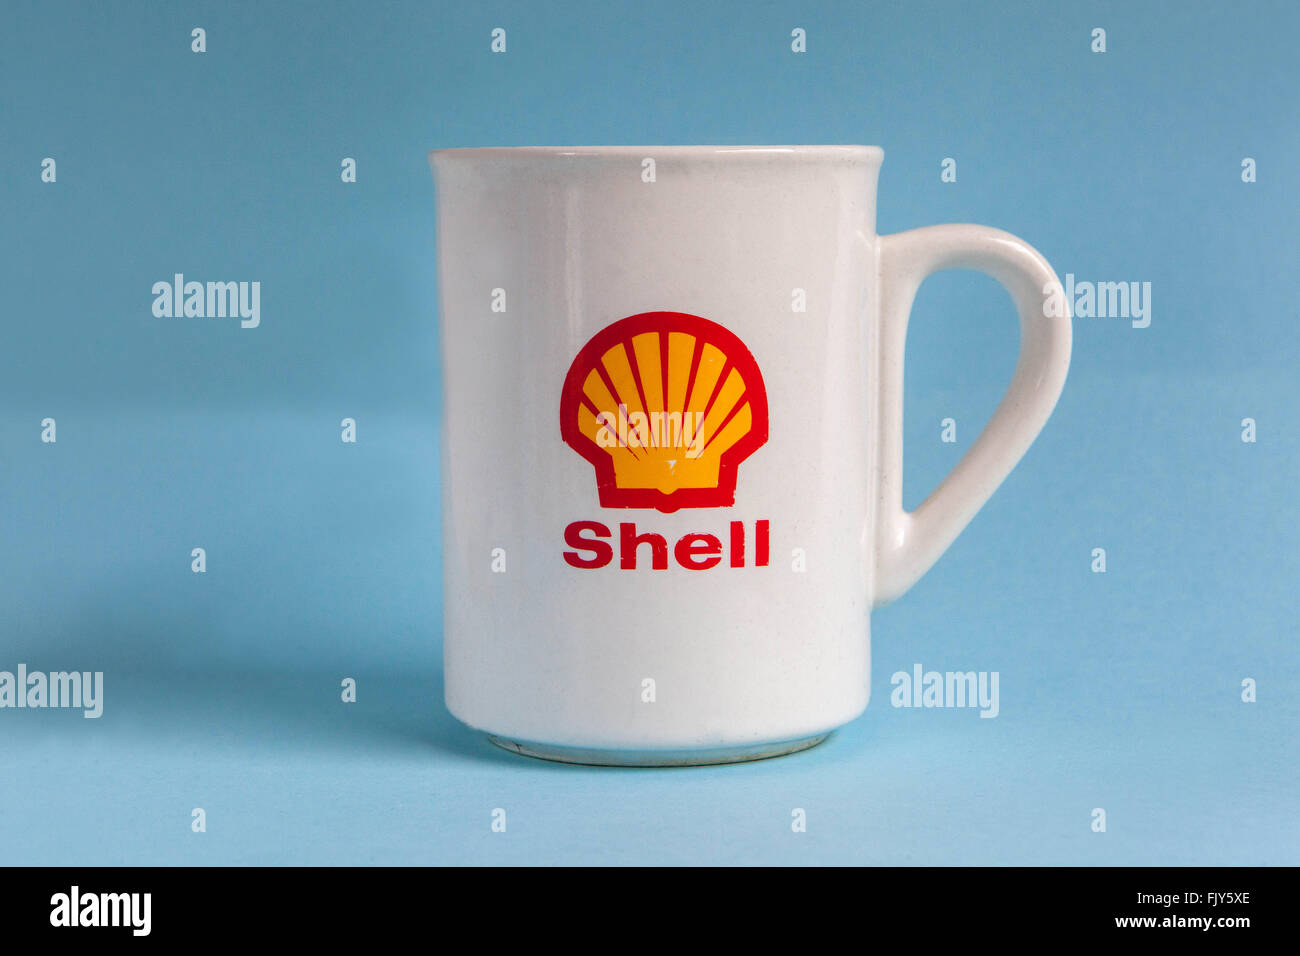 cup, gift item shell oil company, logo, sign - Stock Image